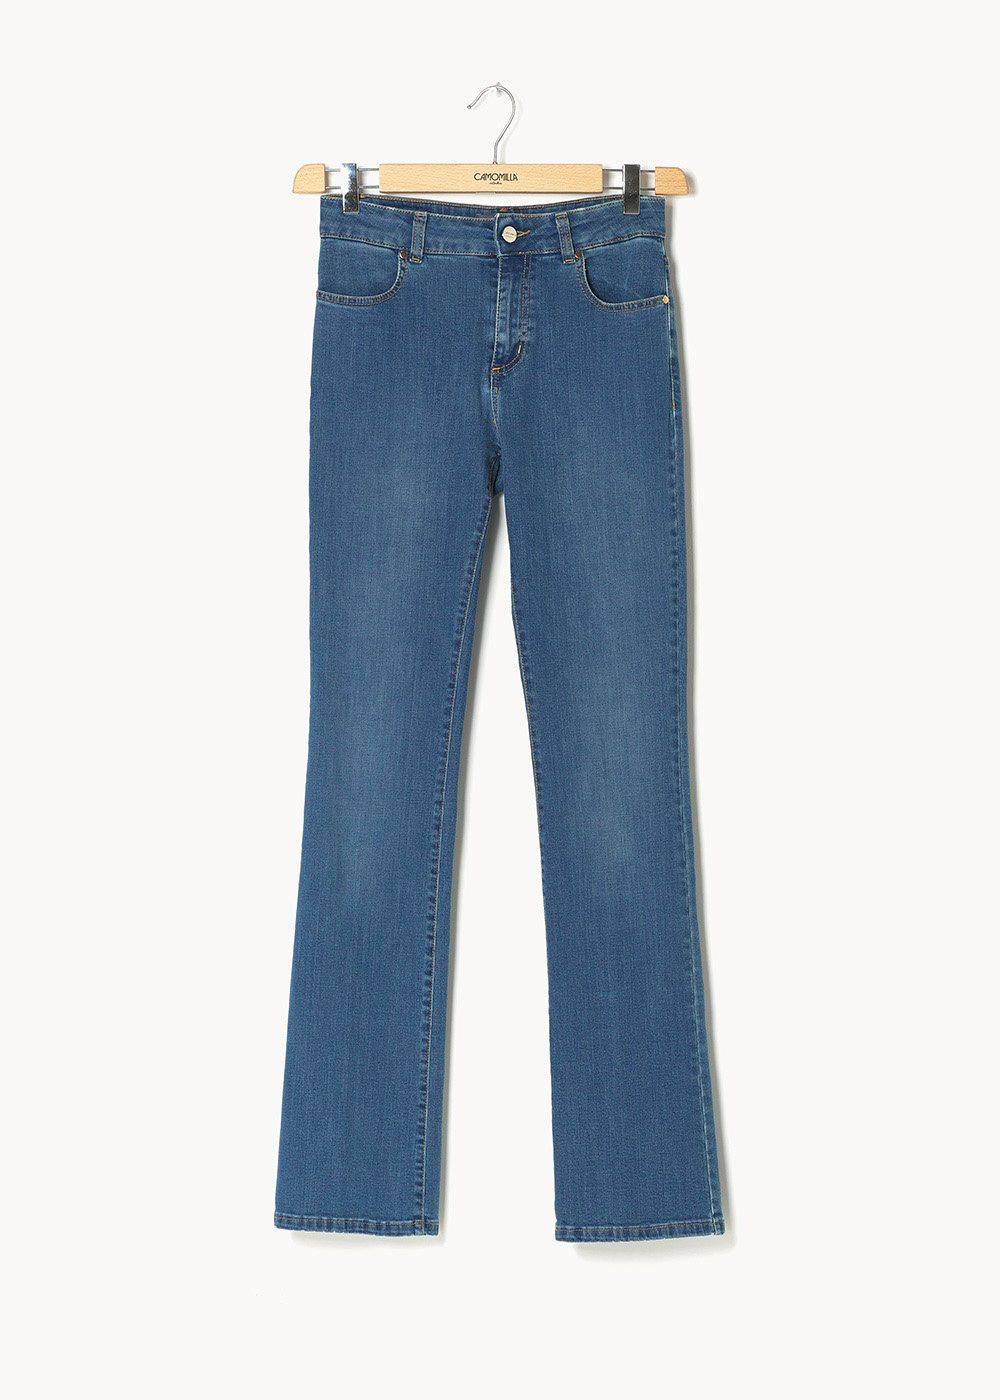 Denim Cindy gamba larga - Denim - Donna